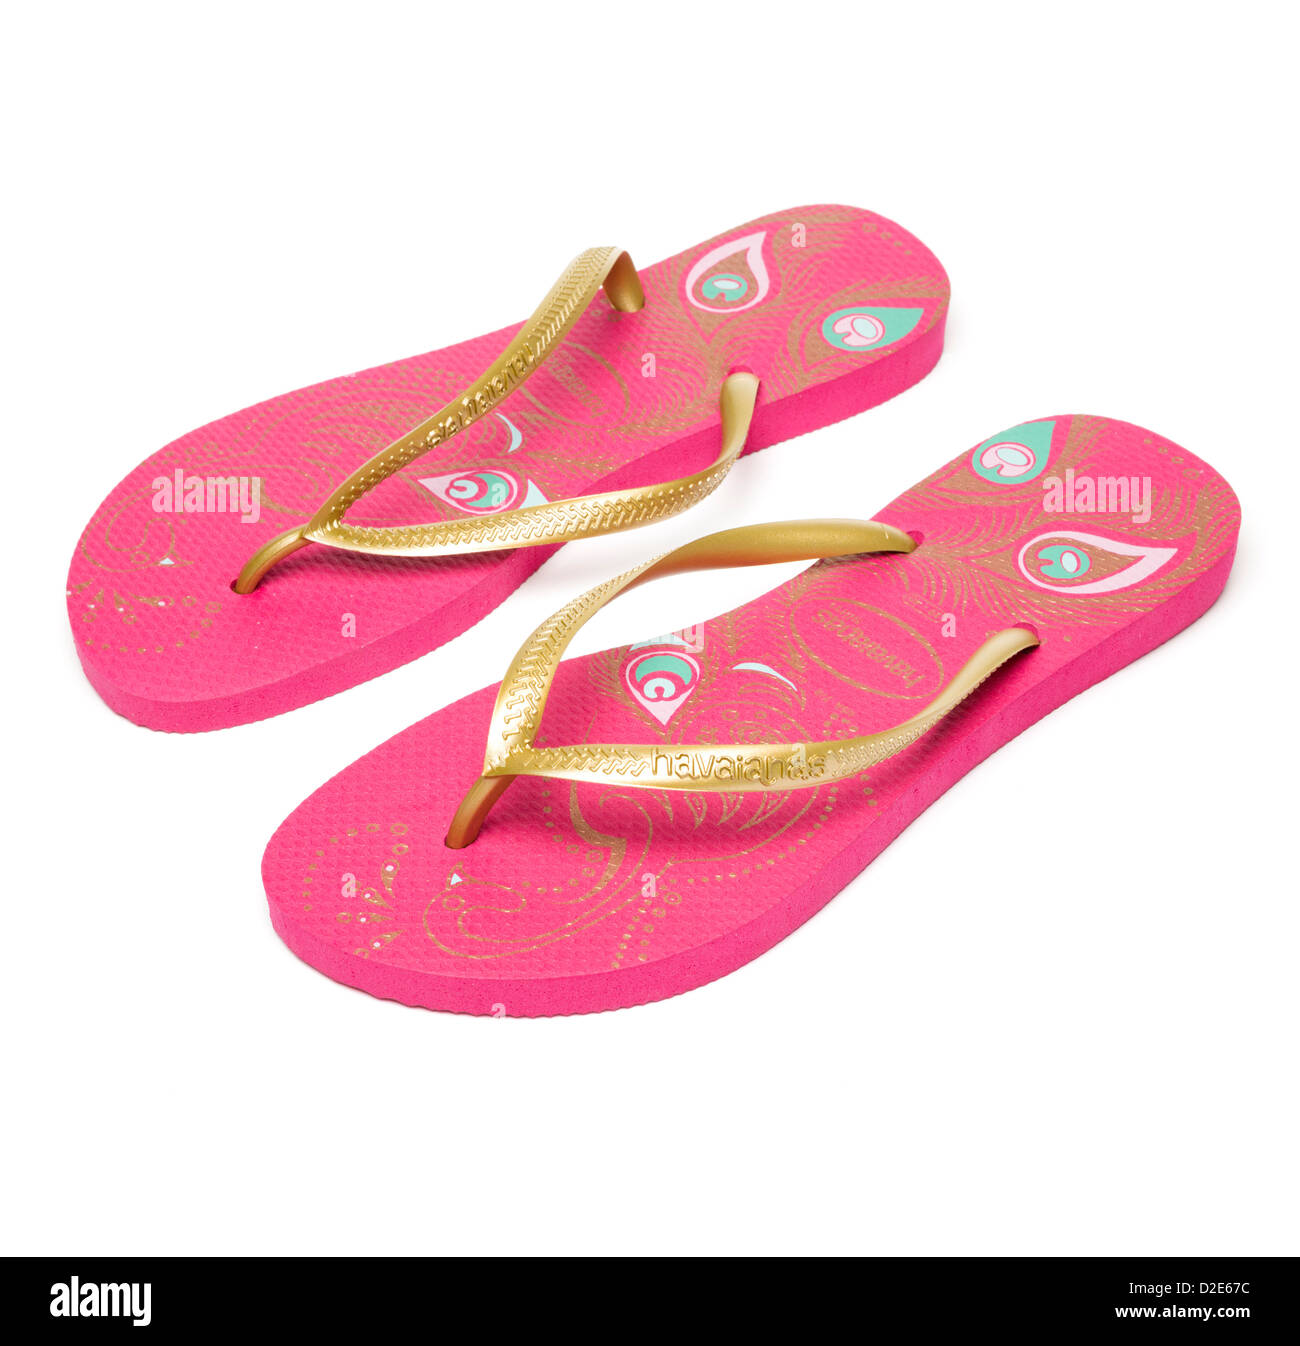 b0b6a33e6aa7f Pair of pink Havaianas flip flops isolated on white background - Stock Image